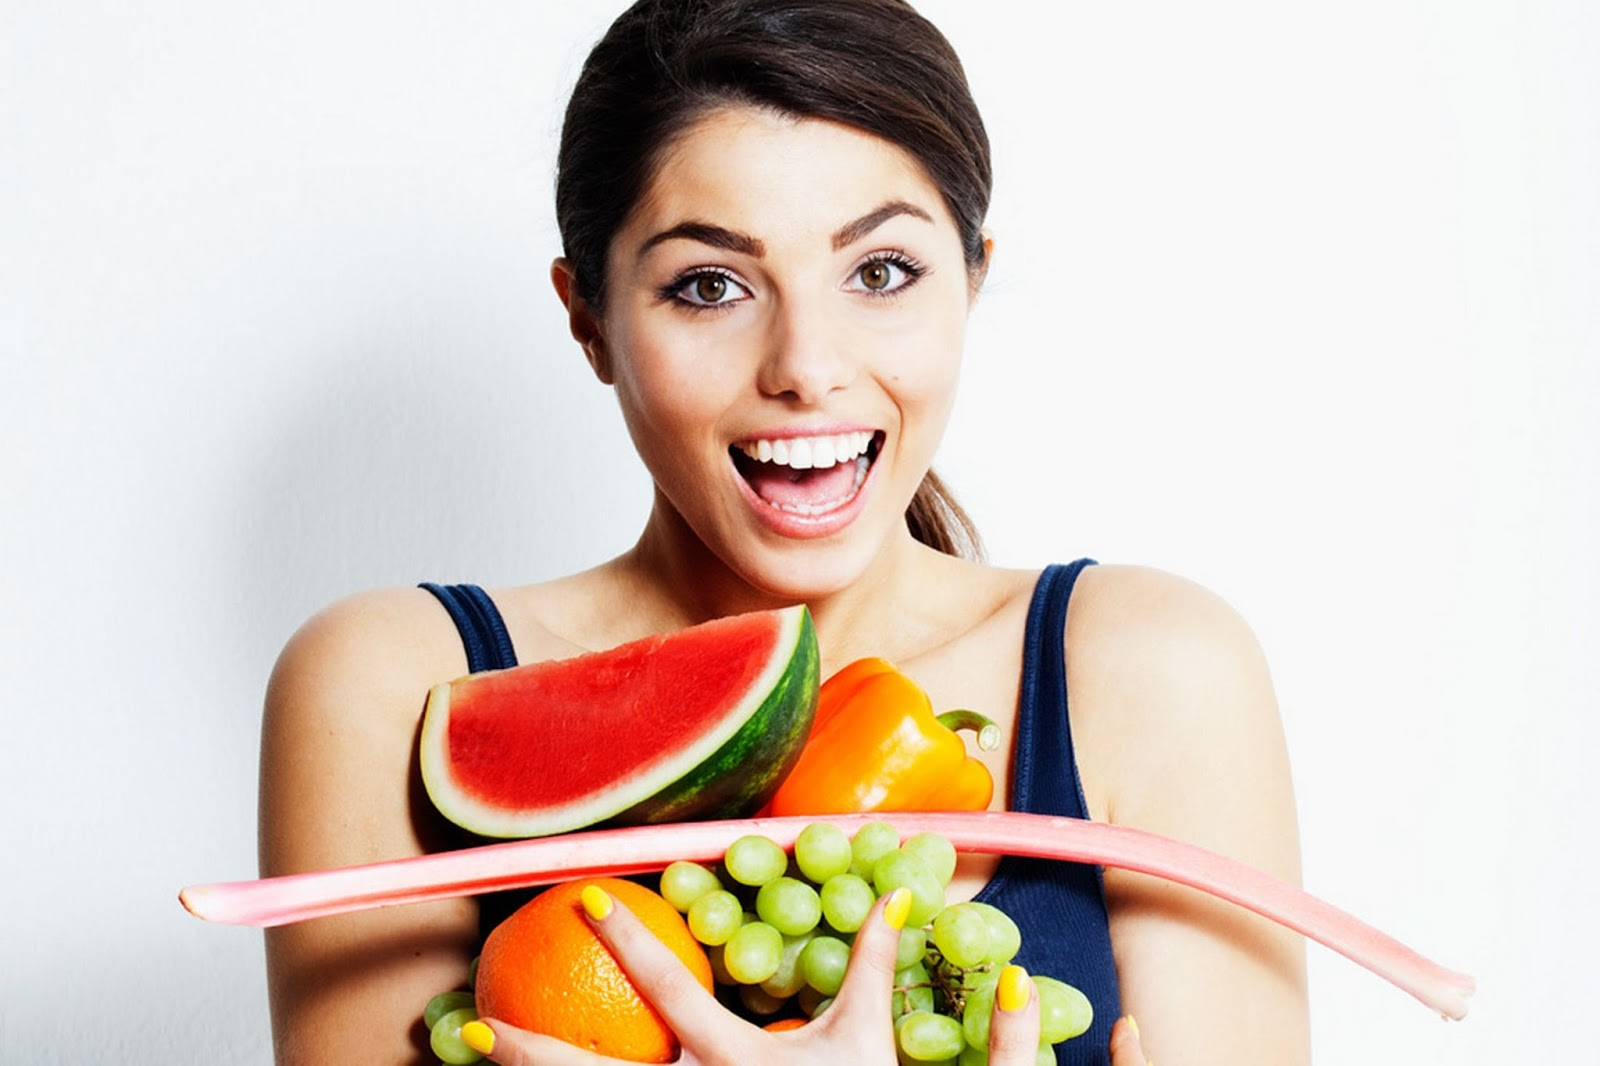 How Does Eating Fruits Help With Weight Loss